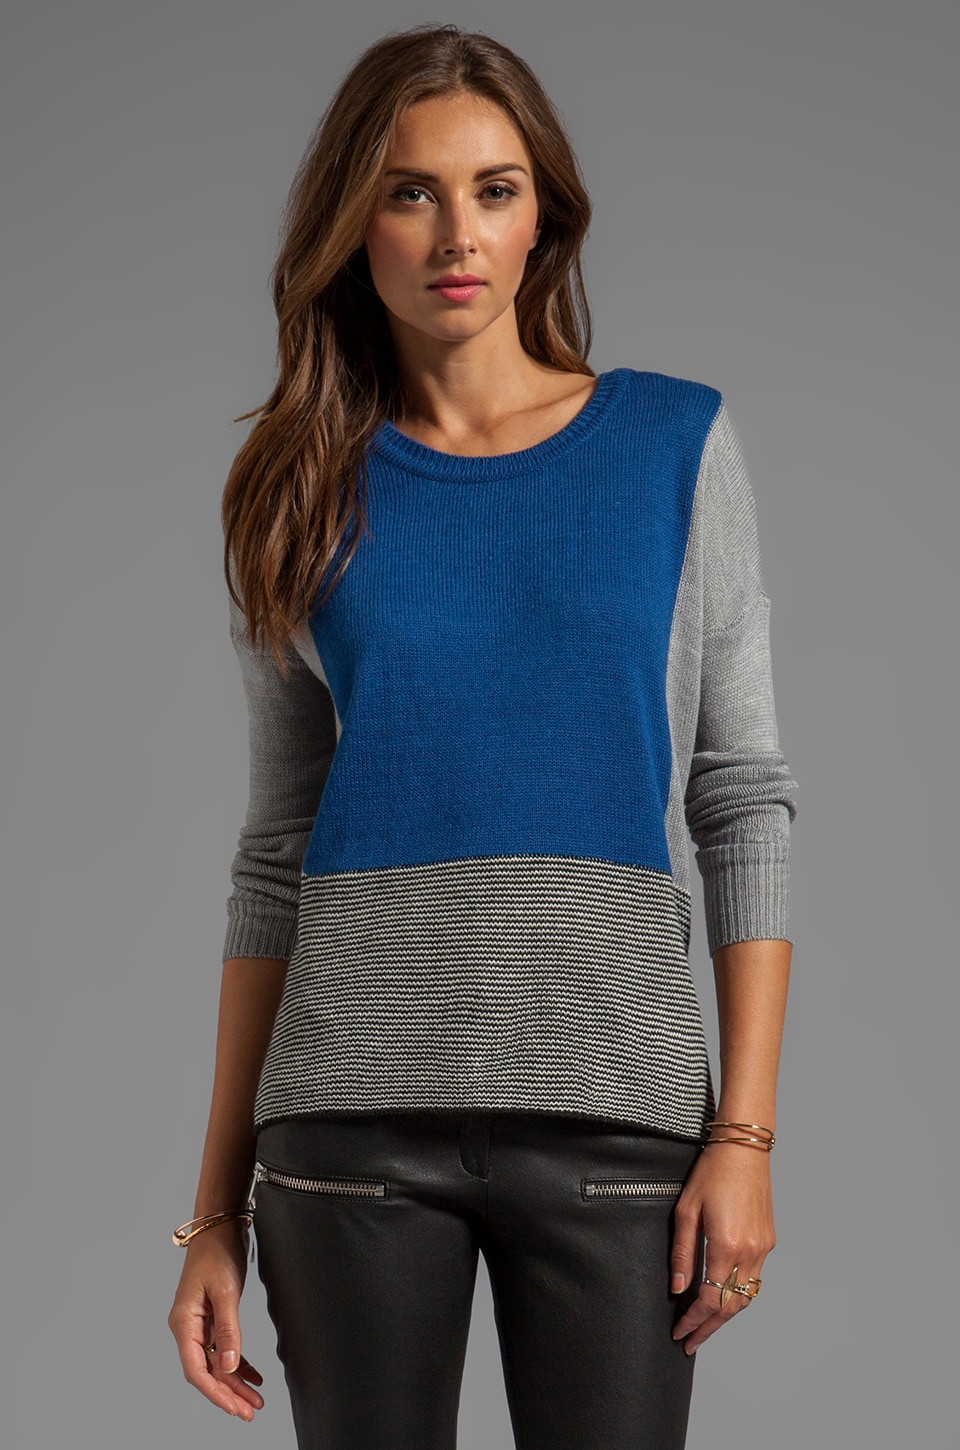 BB Dakota Alice Colorblock Sweater Knit in Limoges Blue